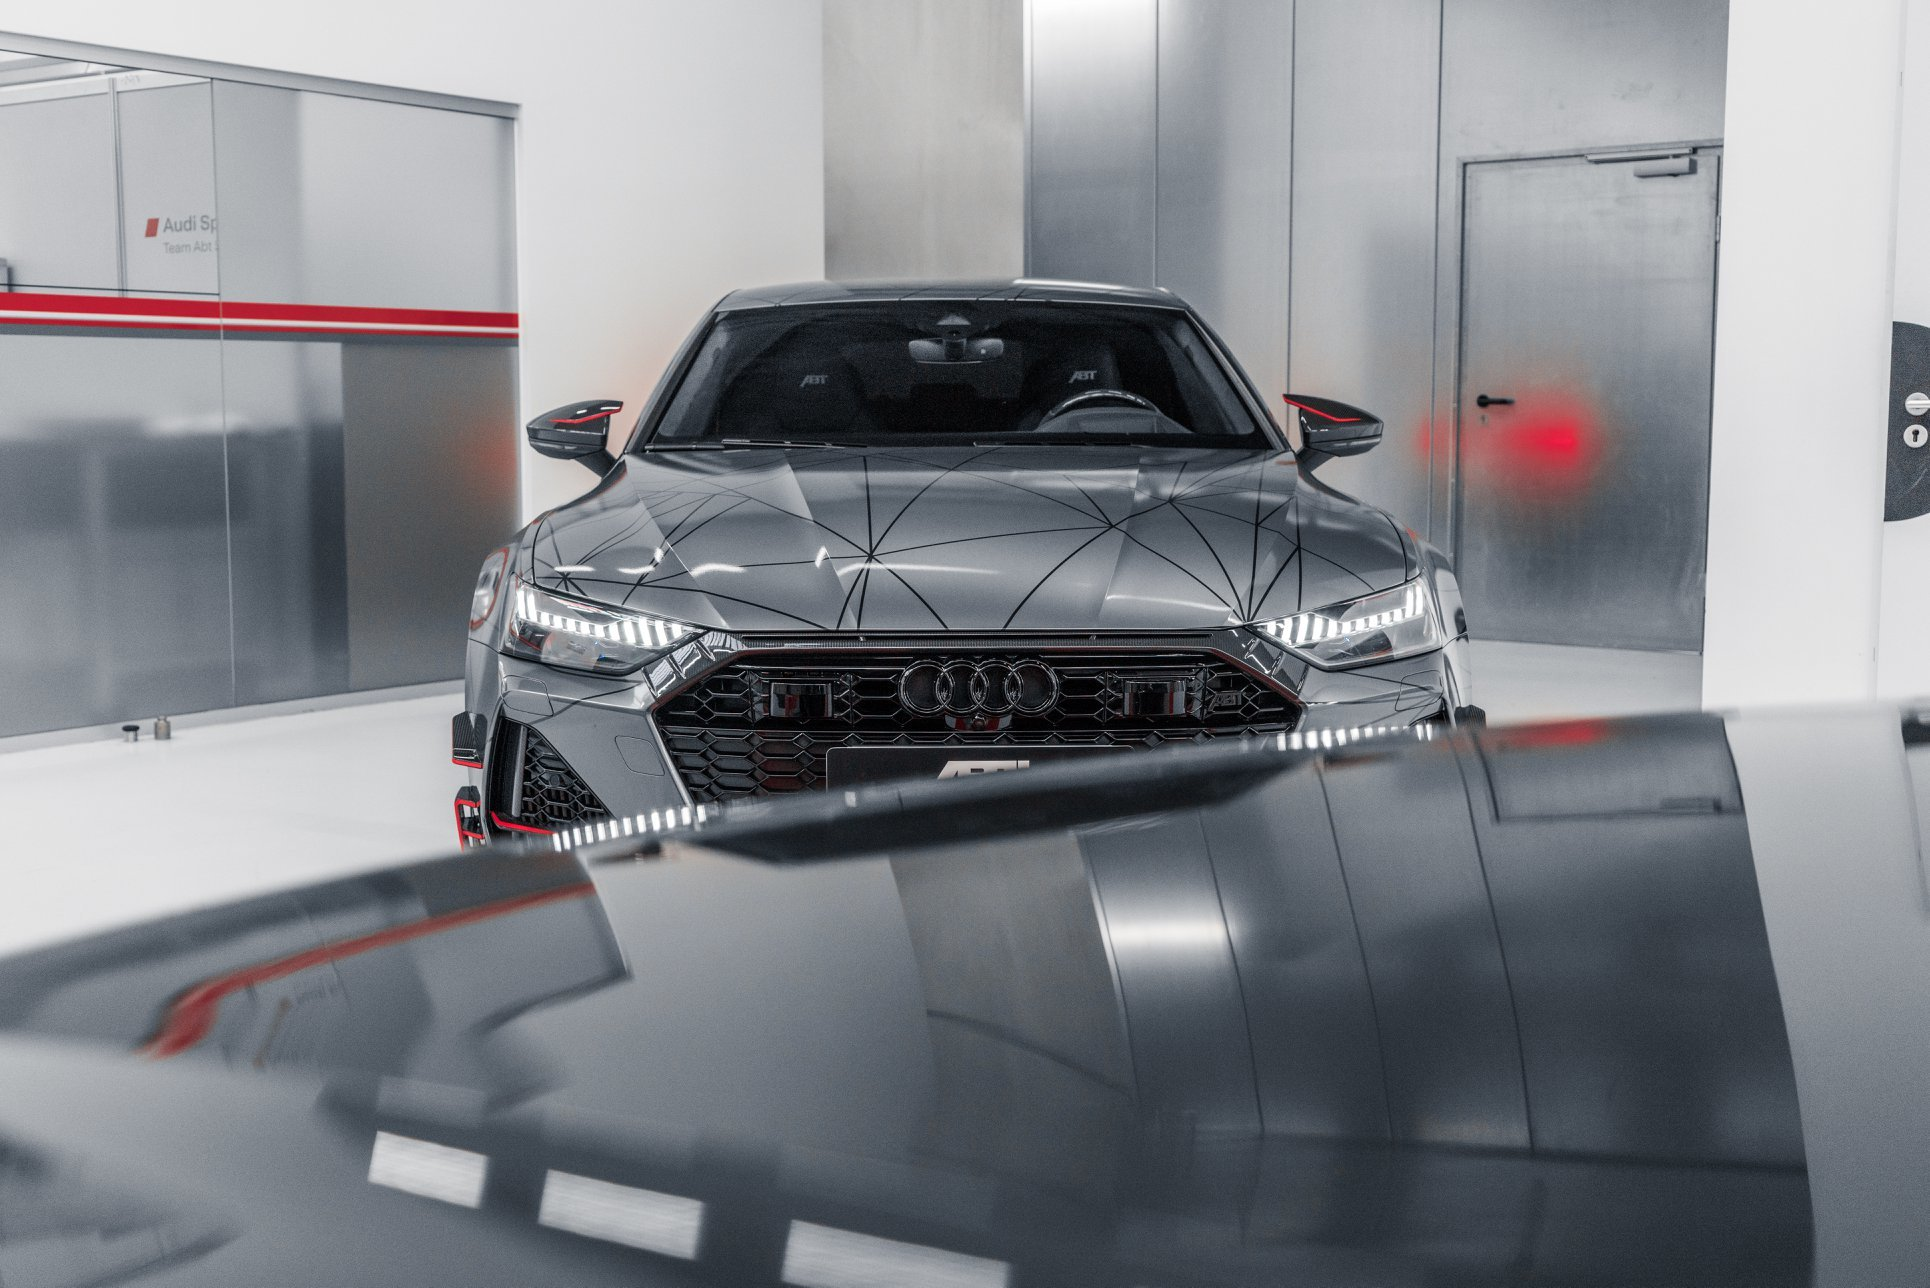 Audi RS7-R with ABT body kit and carbon parts